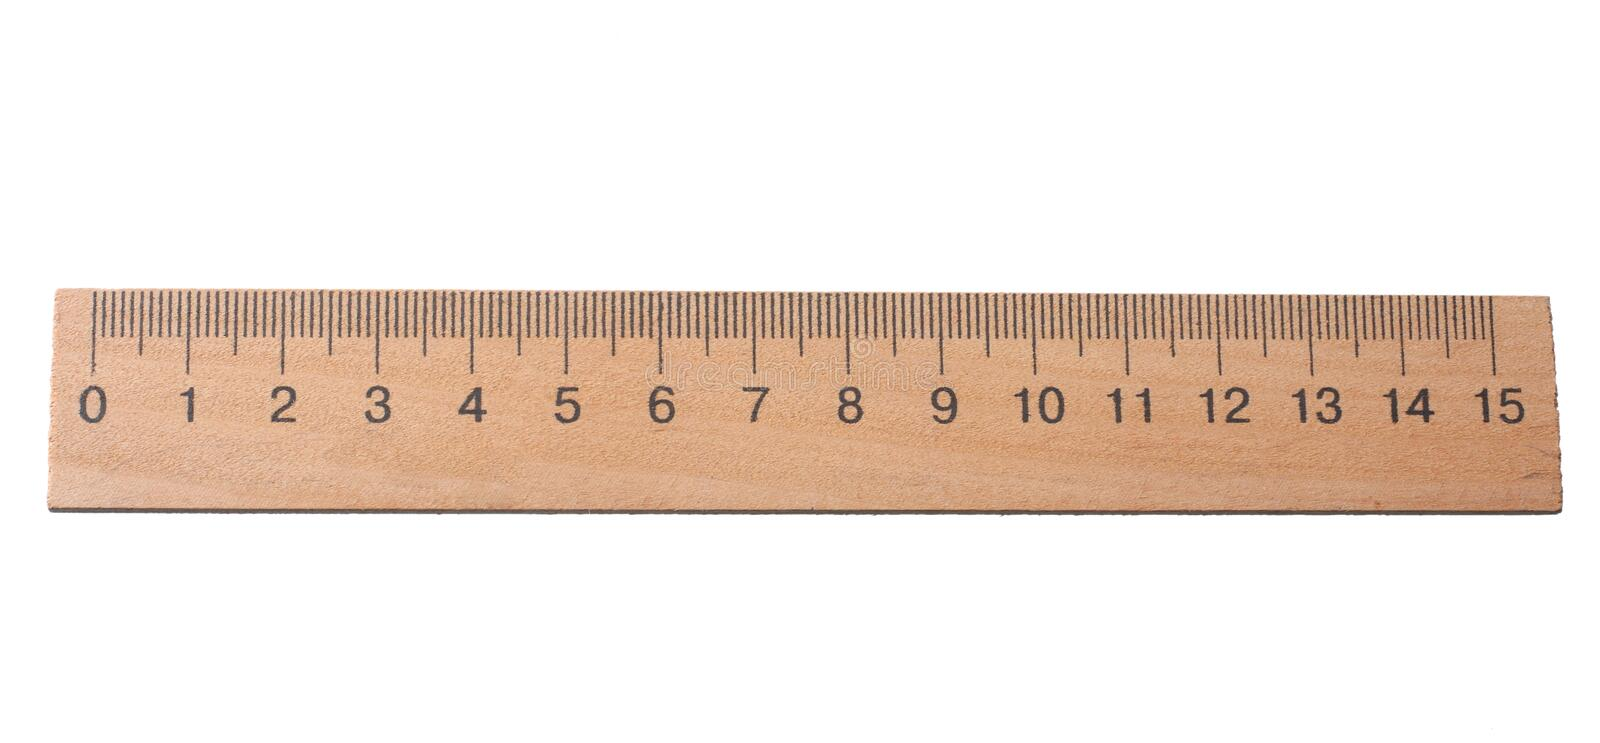 Wooden ruler isolated on white background. top view royalty free stock images